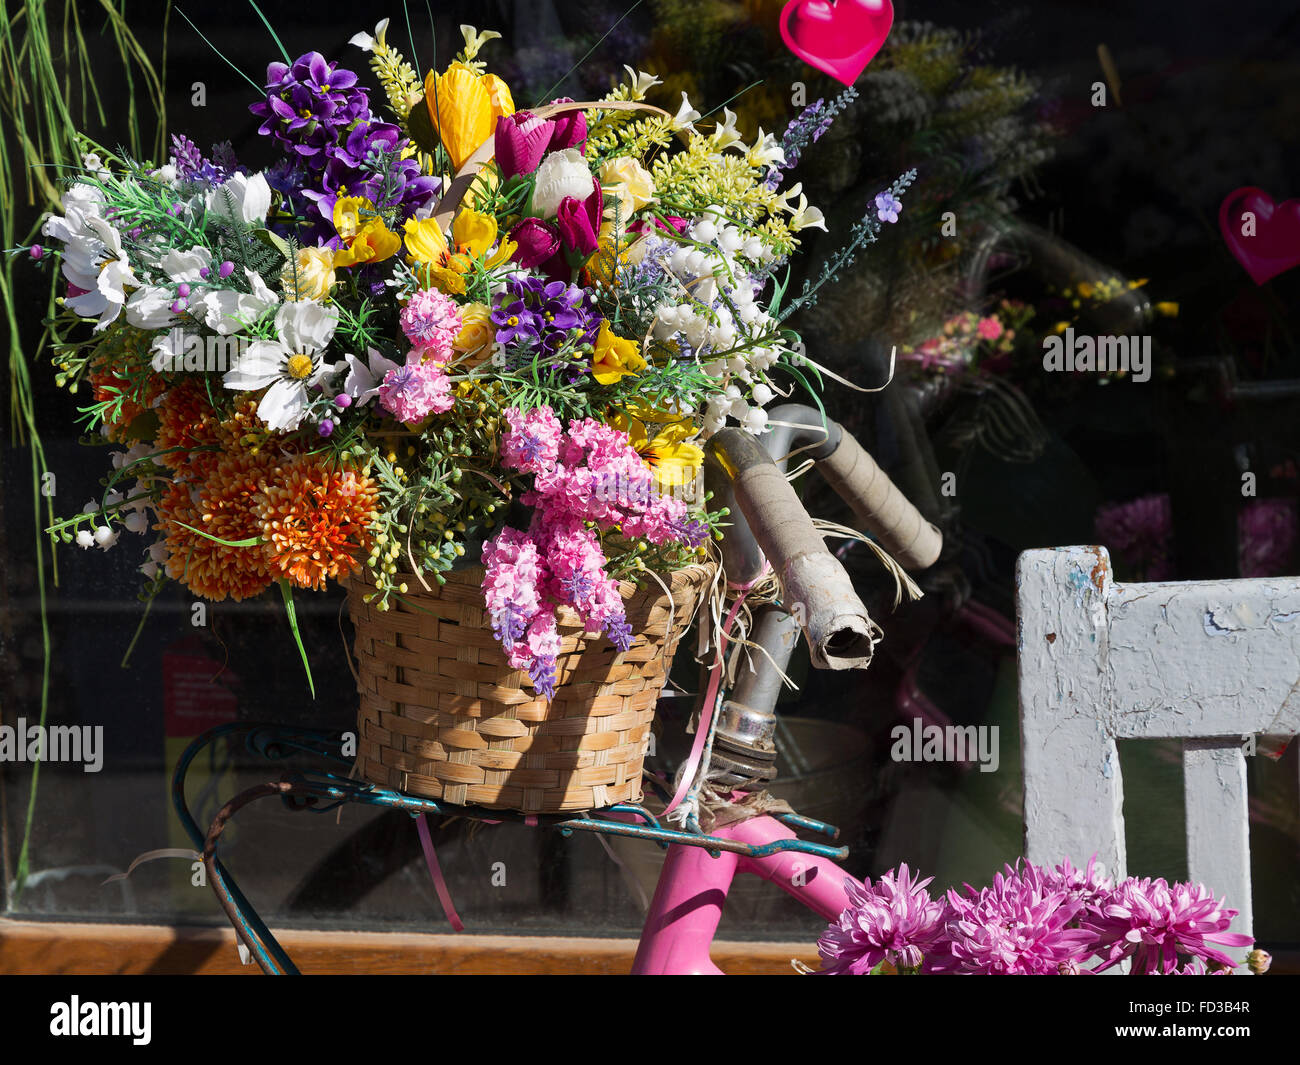 Bright Spring Flowers In A Wooden Box Iron Bucket In The Background